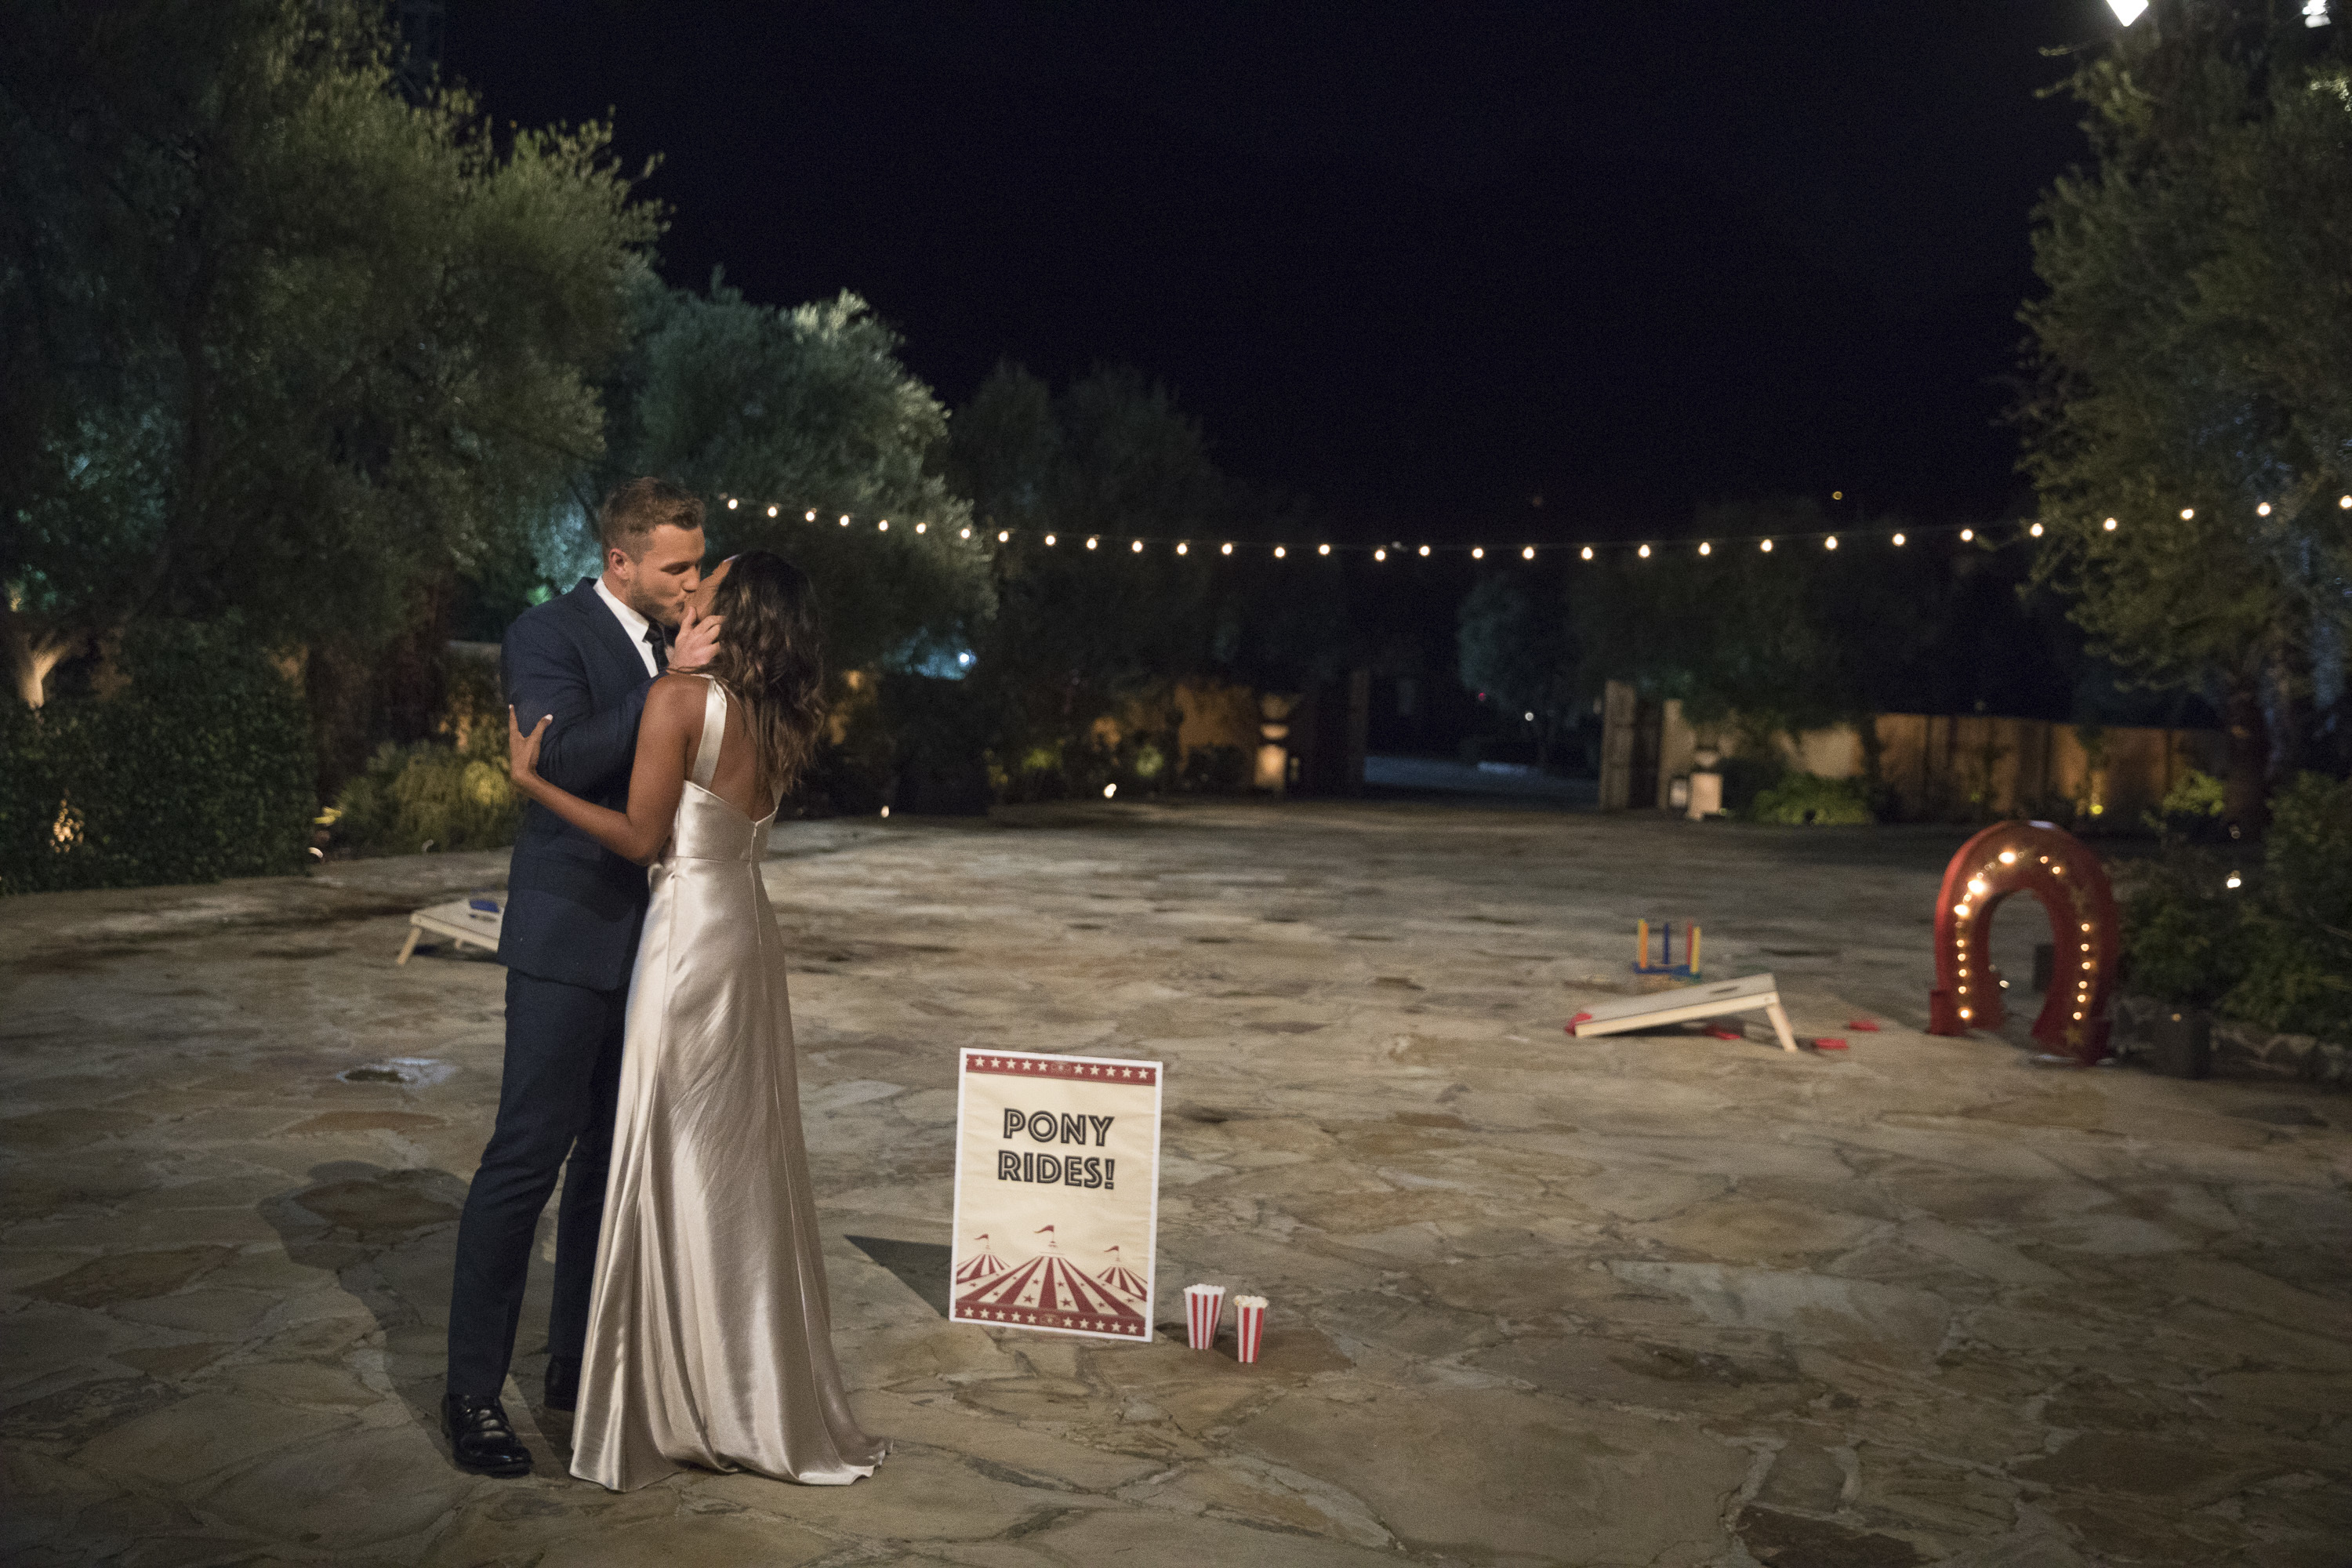 Bachelor 23 - Tayshia Adams - Discussion - *Sleuthing Spoilers* - Page 8 150365_1234